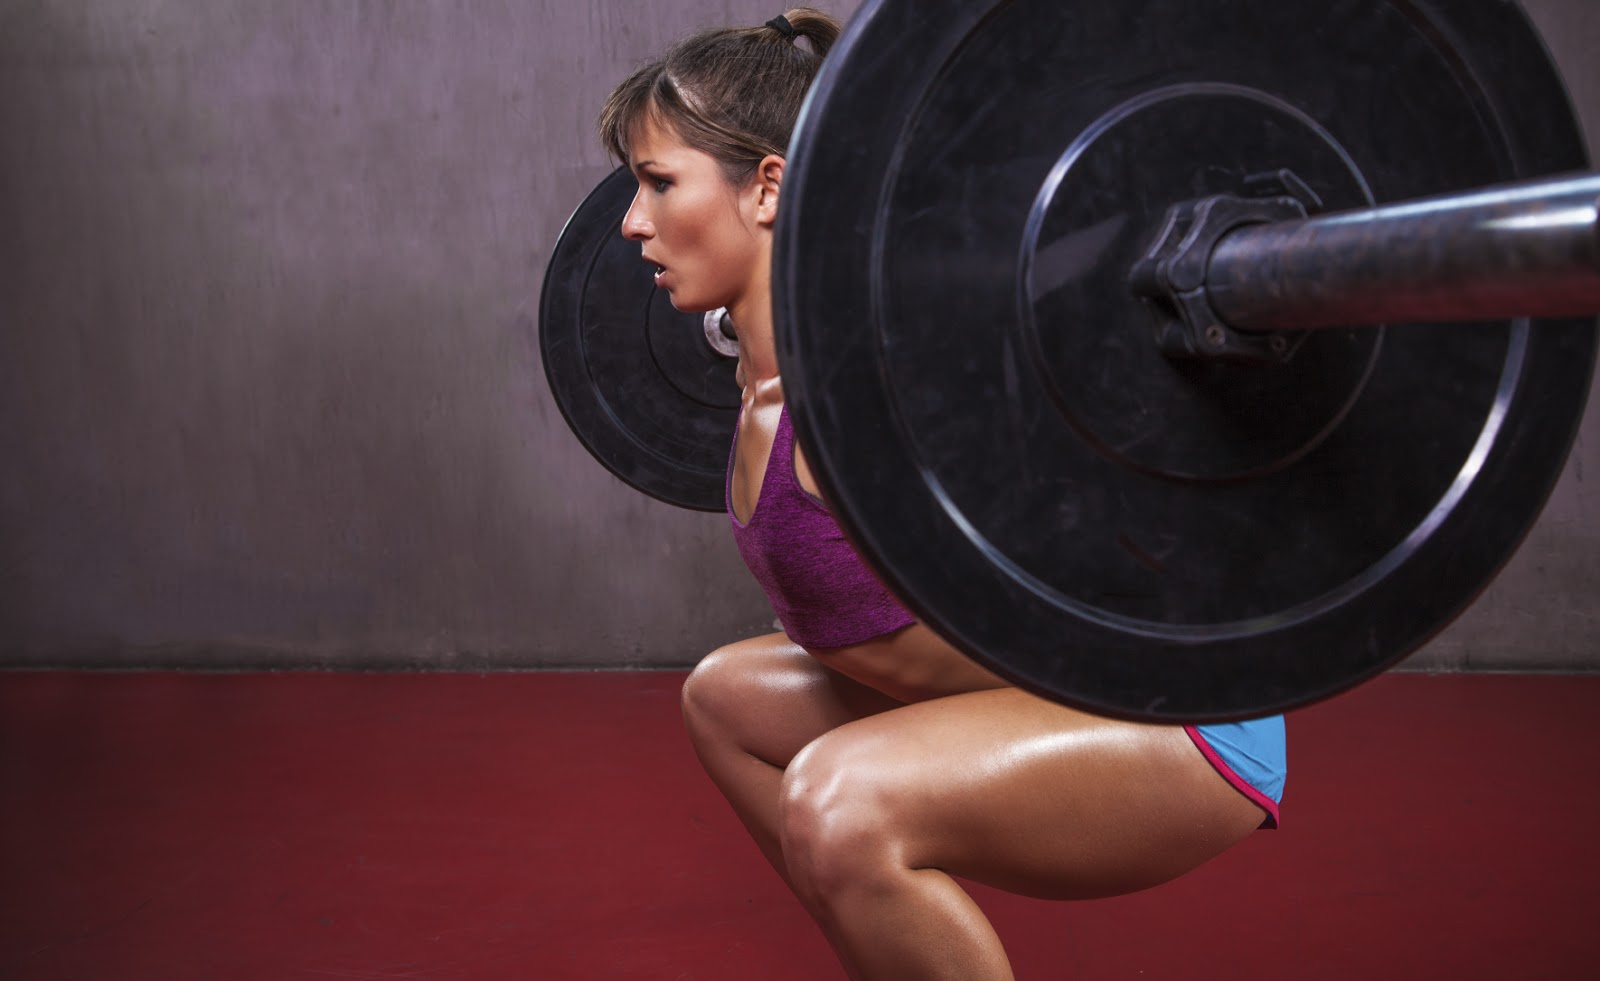 5 Common Mistakes People Make When Squatting - Insports Centers in ...